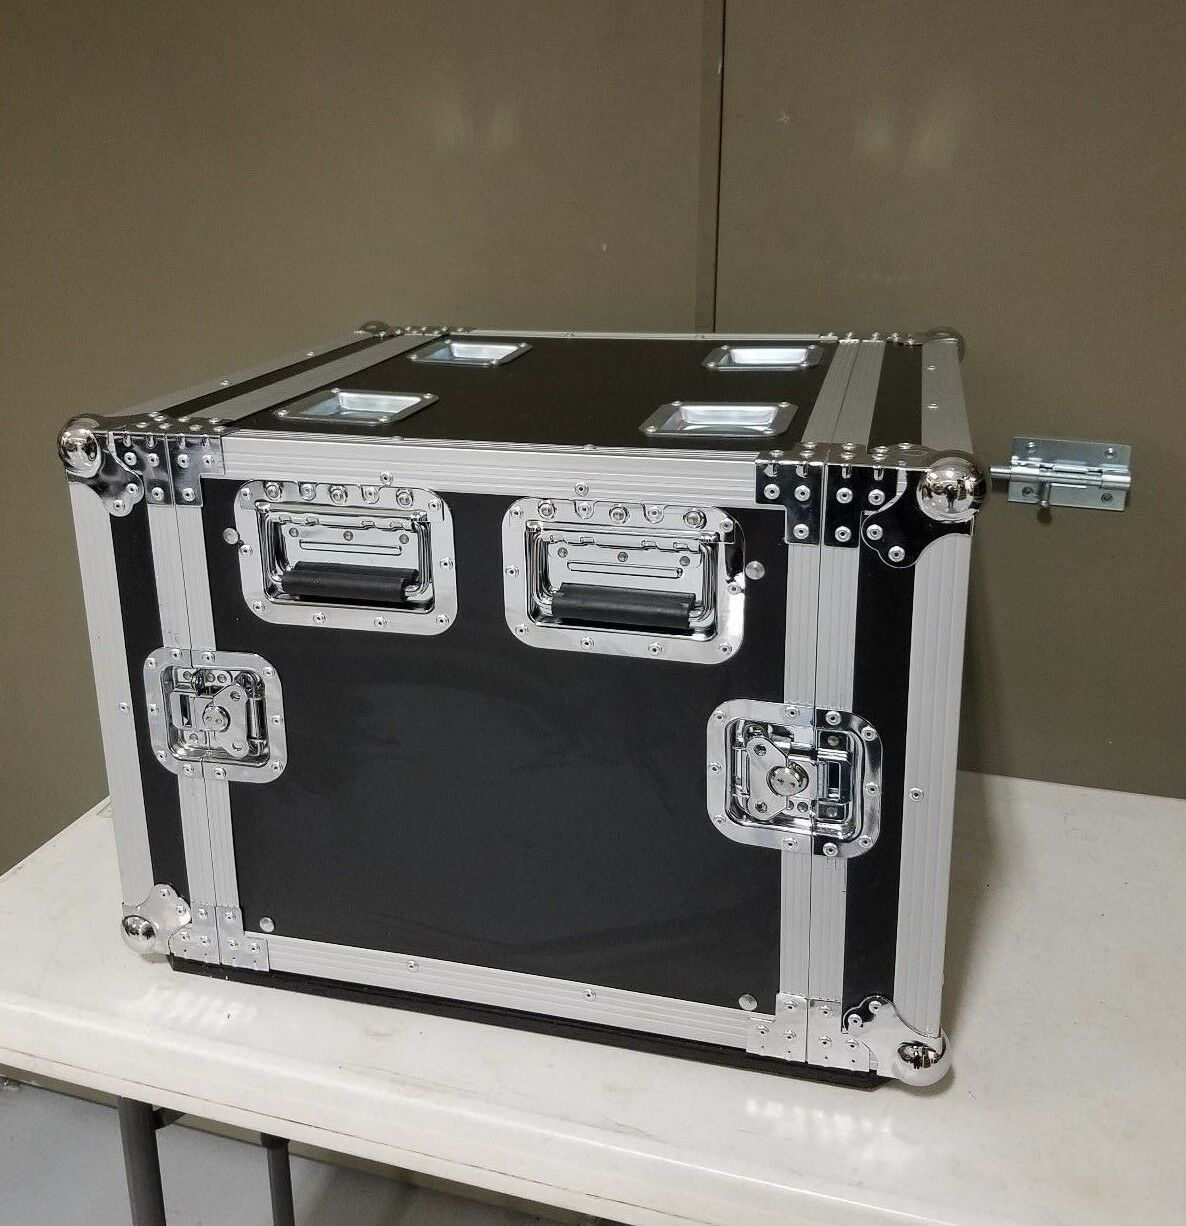 NEW 10U Roadcase with rails, Comes with 4  Casters, 18  Deep